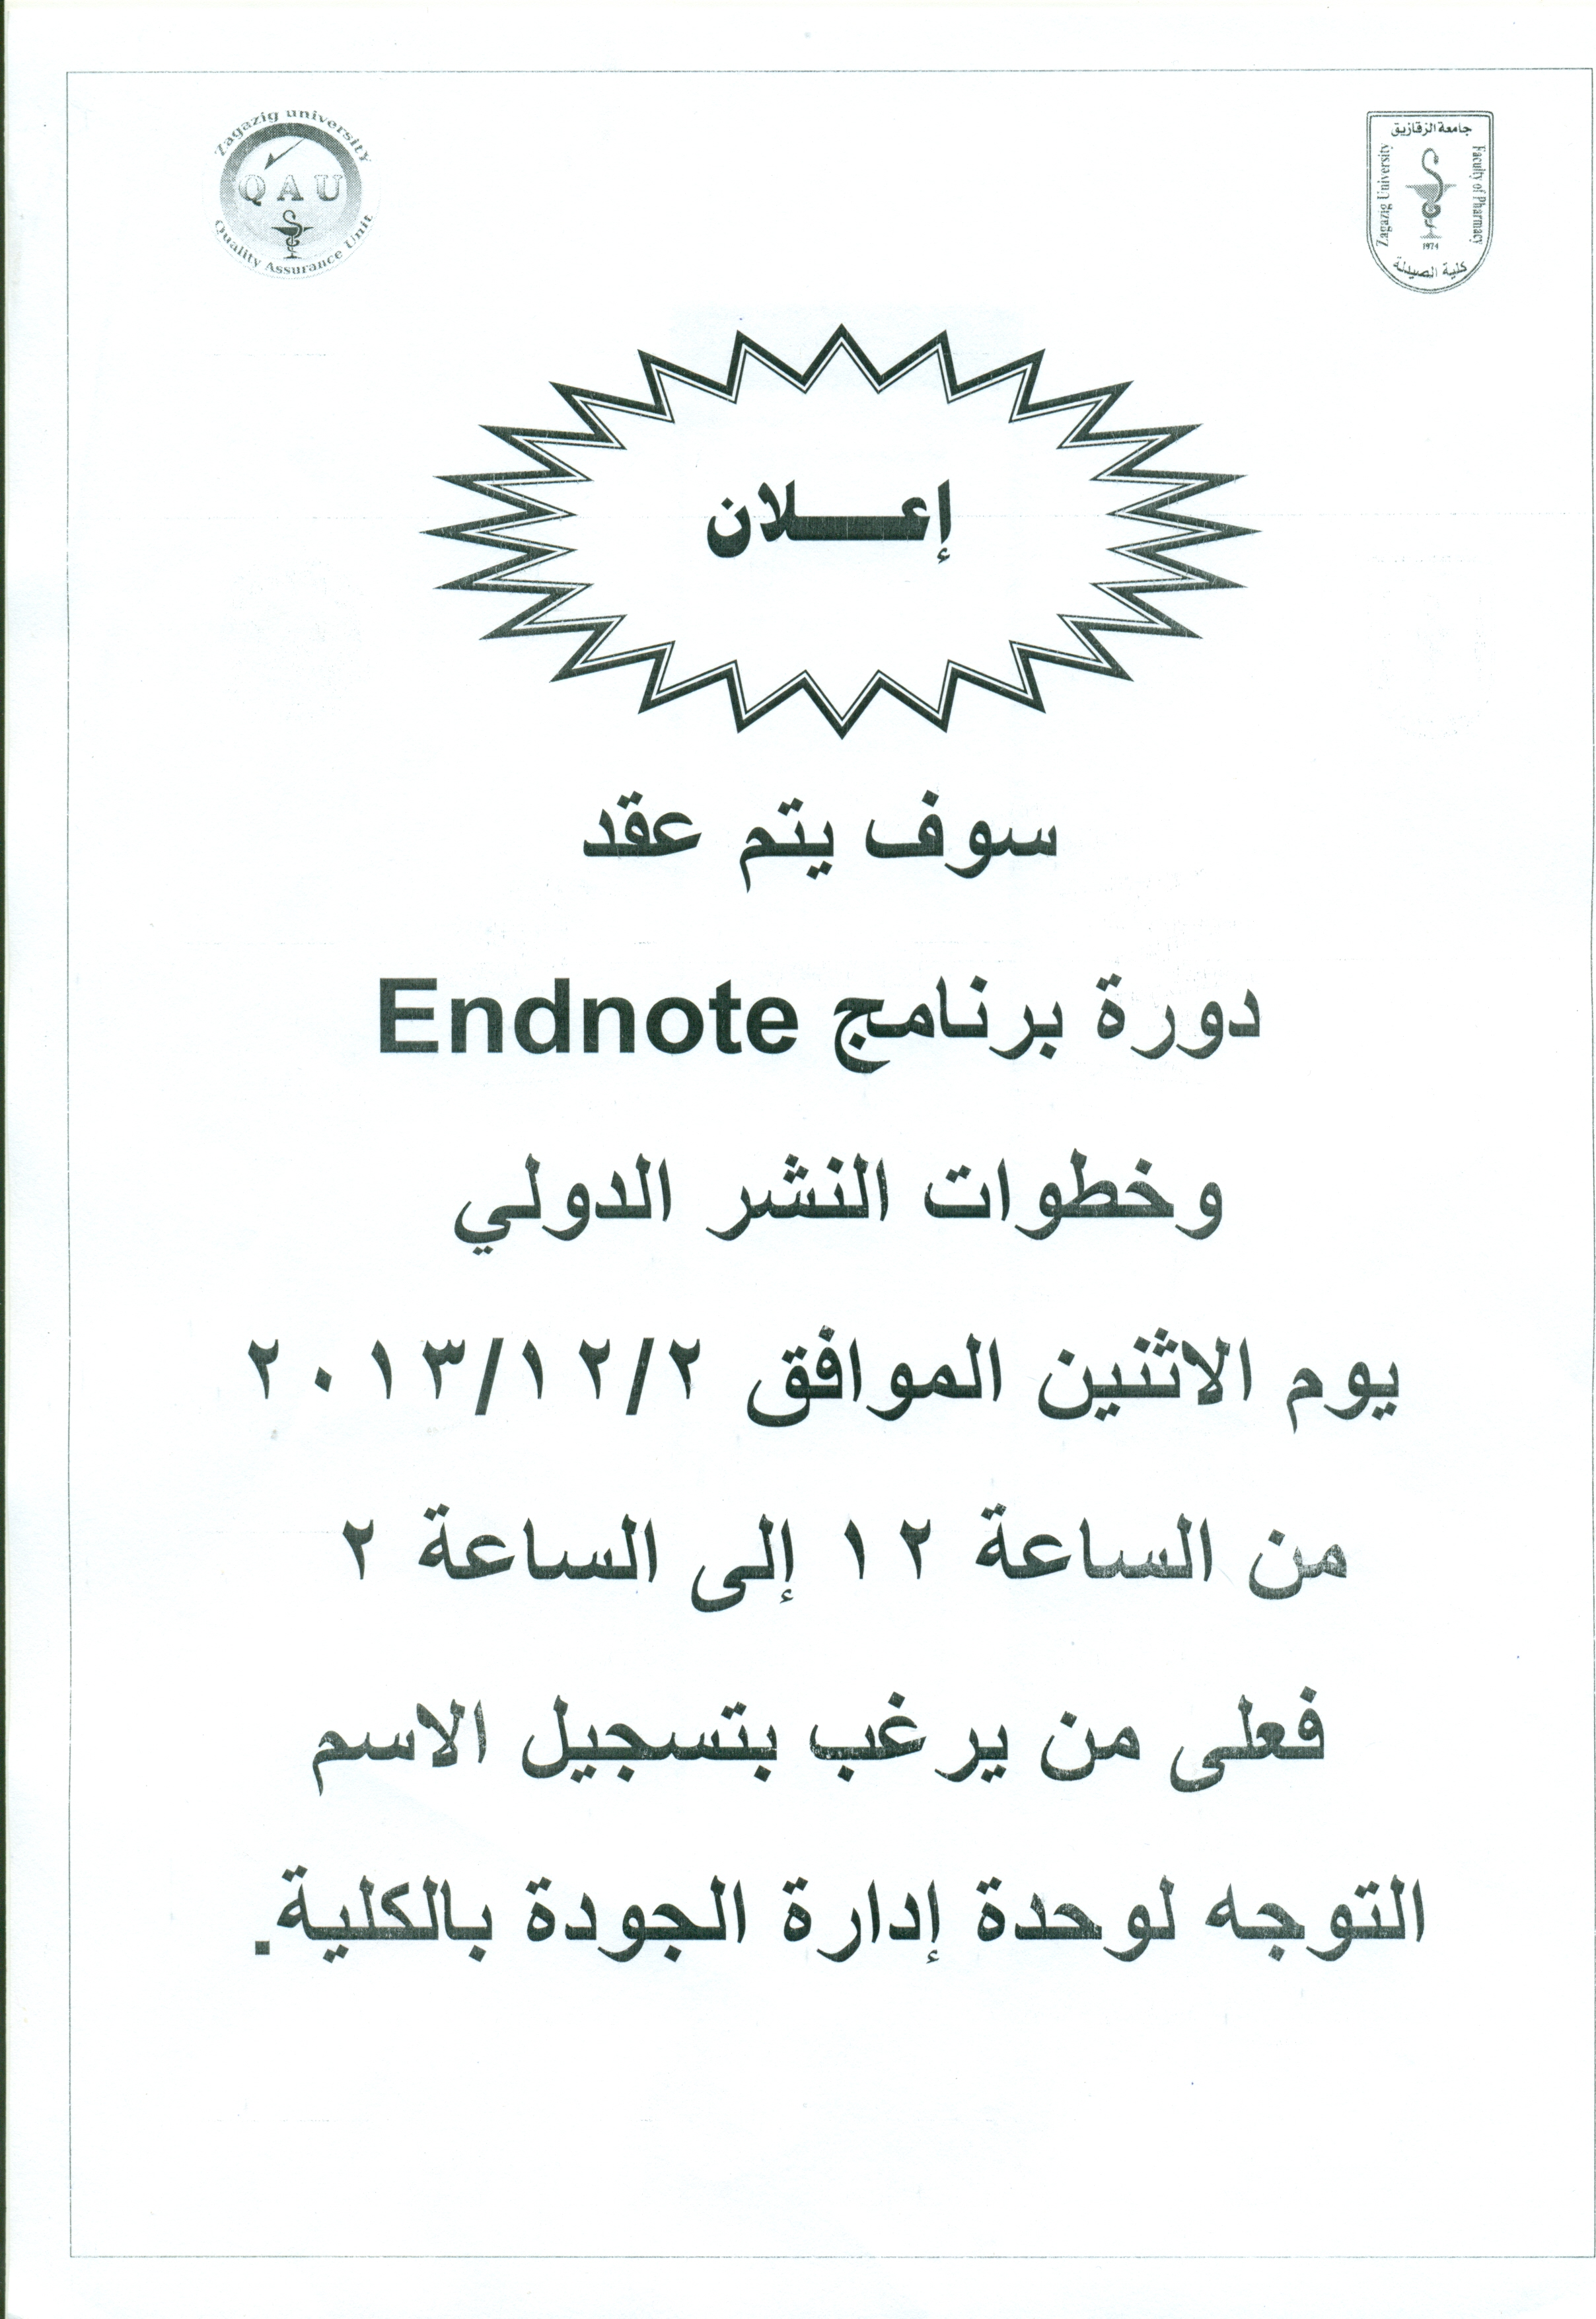 Announcement for registration for the course program Endnote